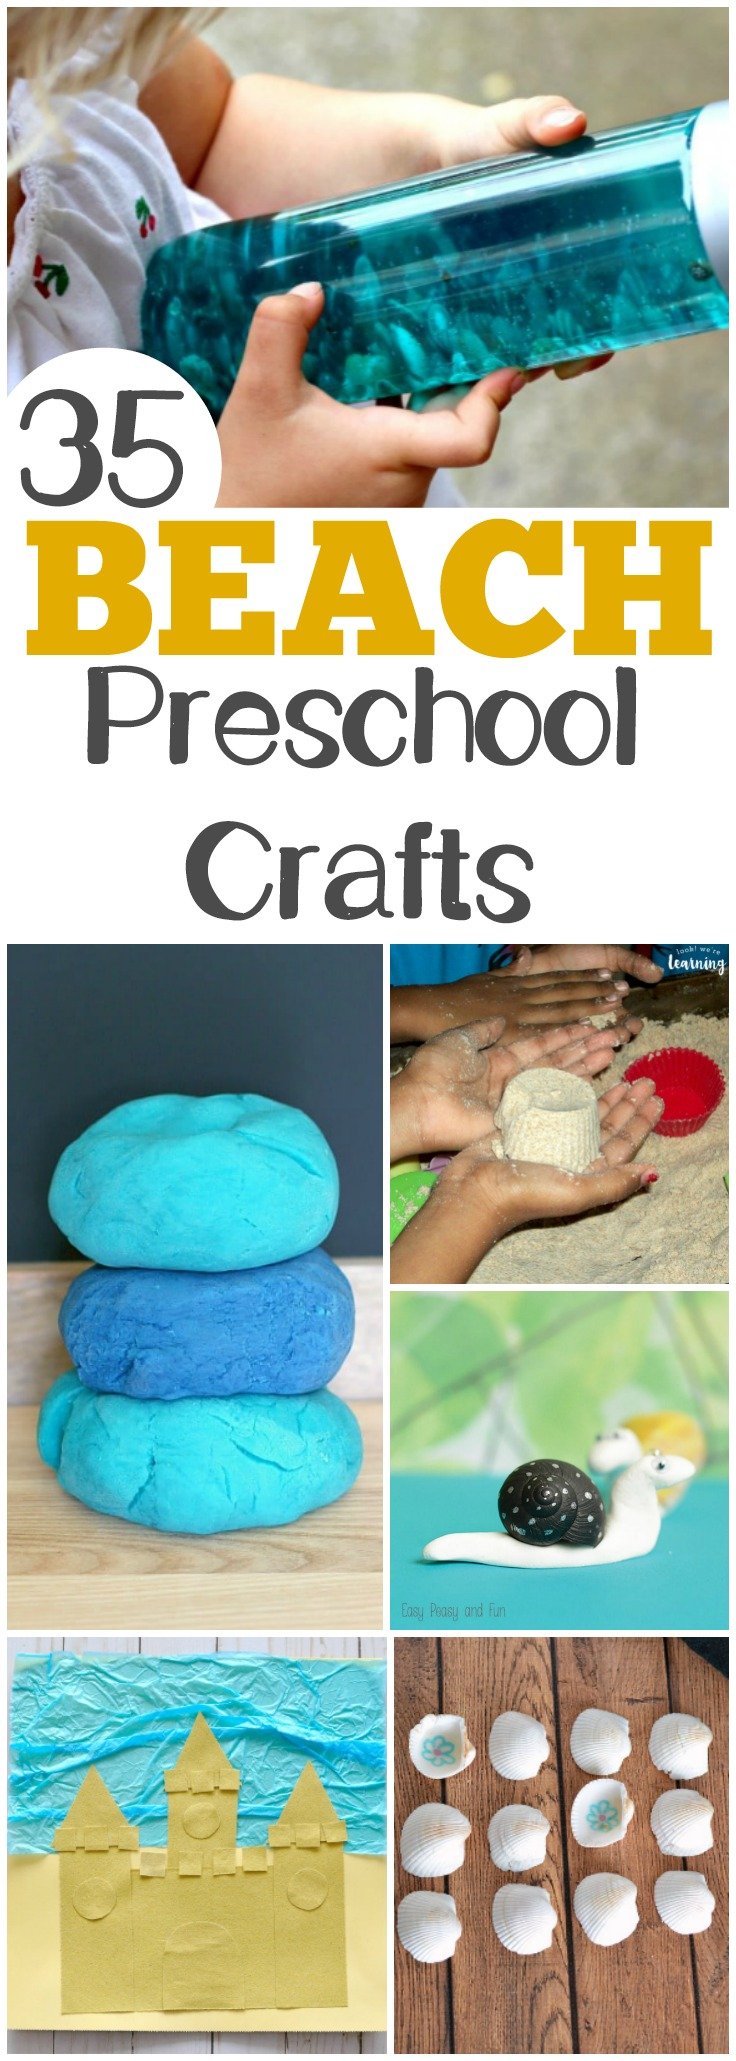 Share some of these easy PreK beach crafts with little ones this summer!